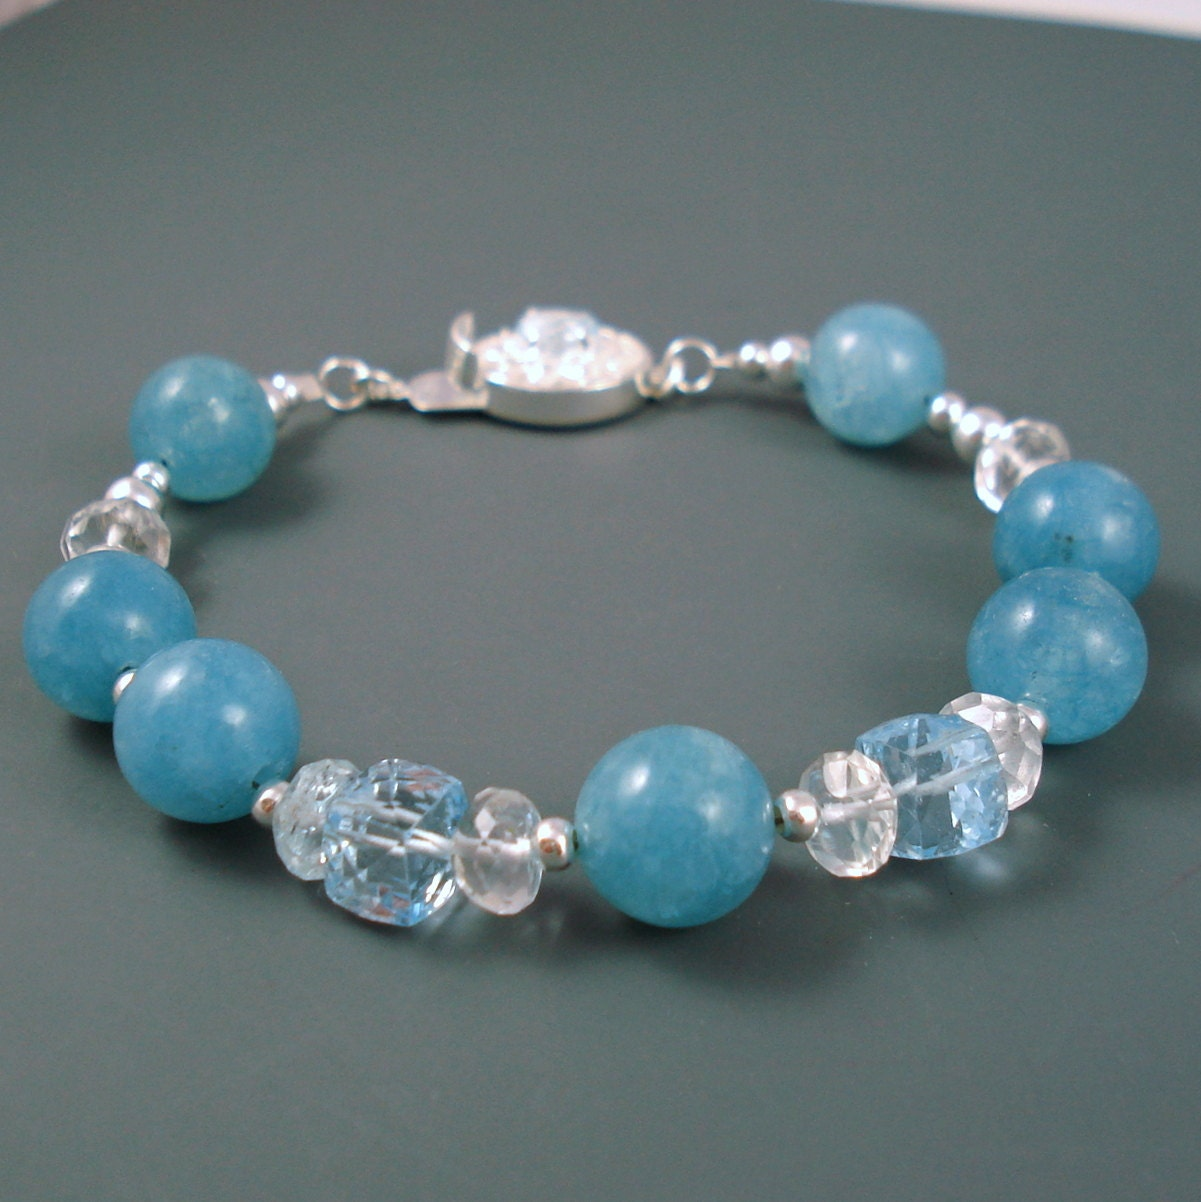 Aquamarine Bracelet Blue Topaz And Aquamarine Gemstone